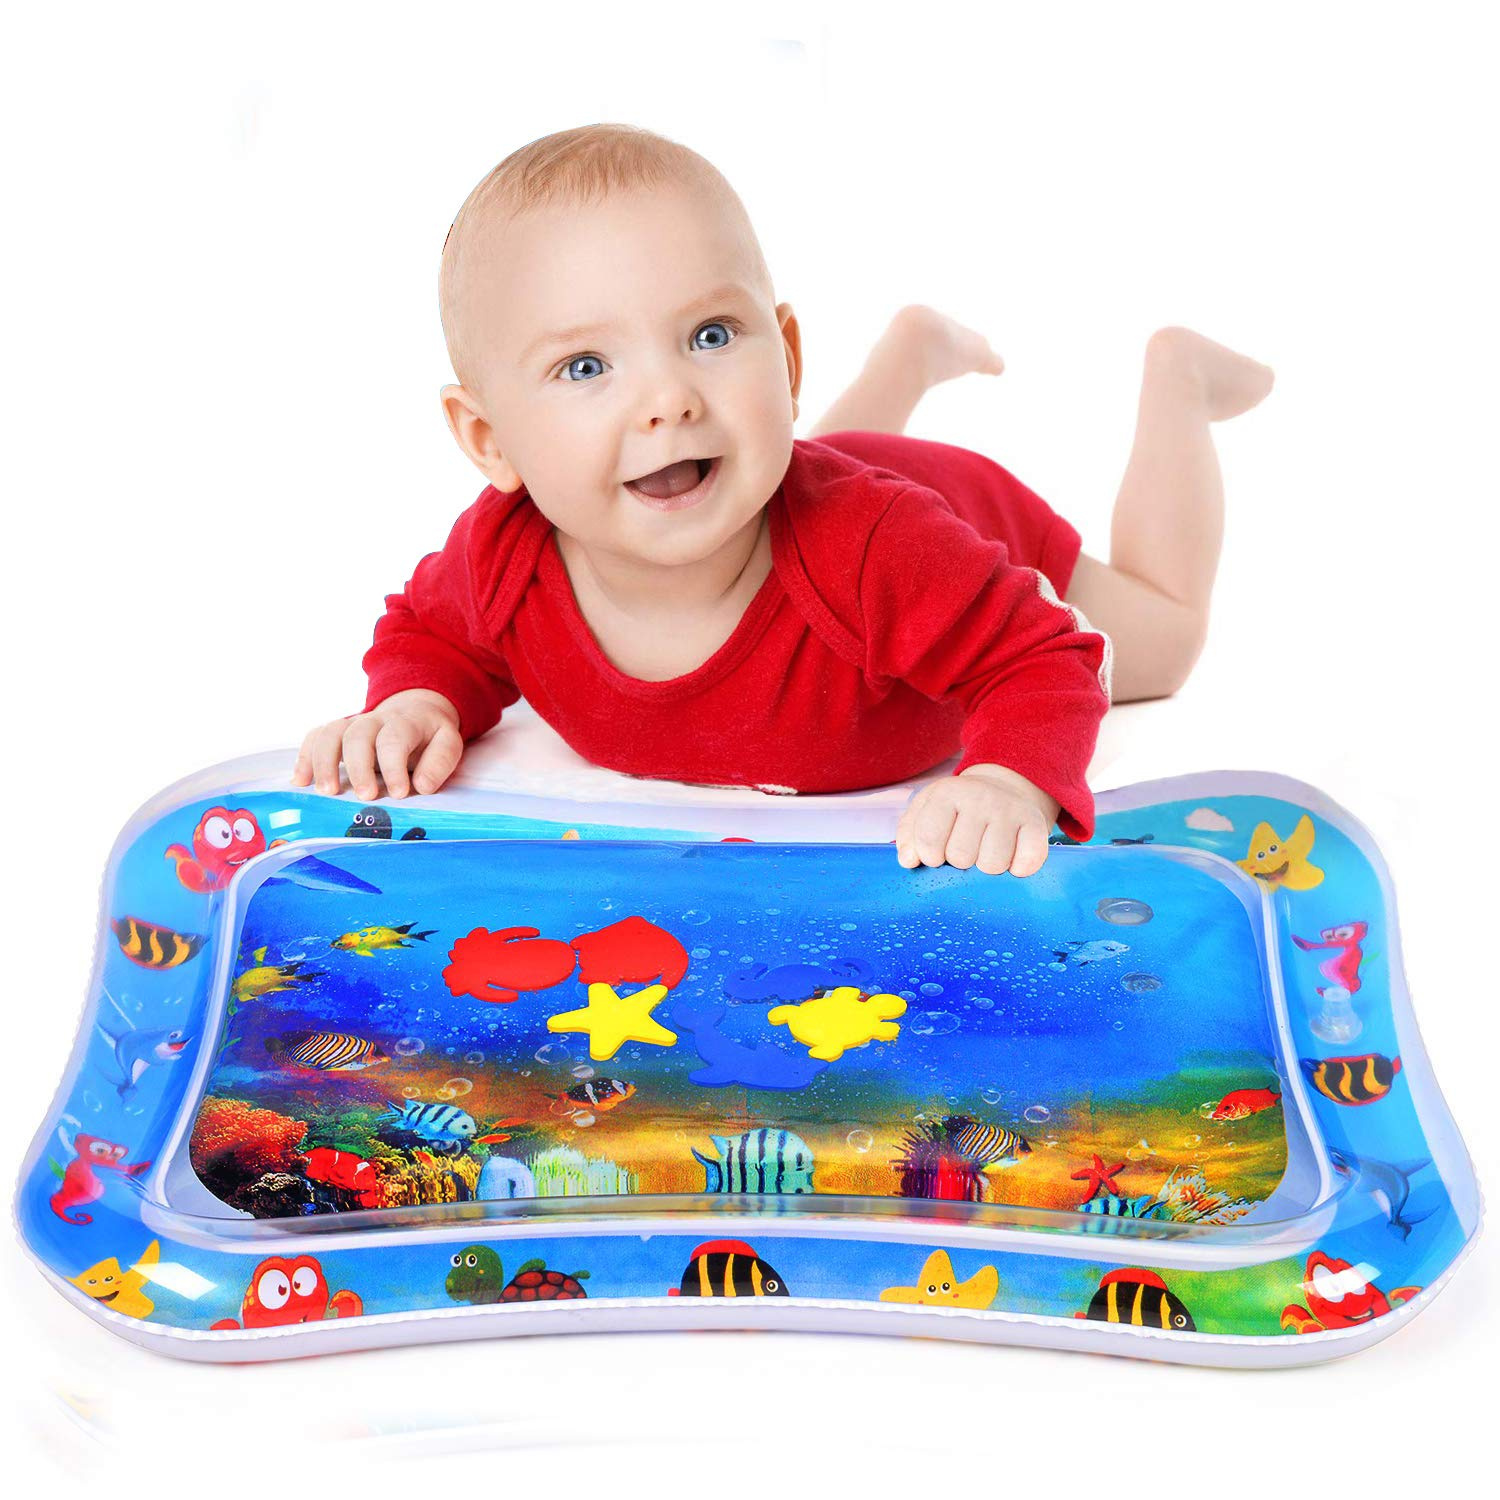 Inflatable Tummy Time Water Play Mat Toys for Infants Toddlers Babies Great Fun